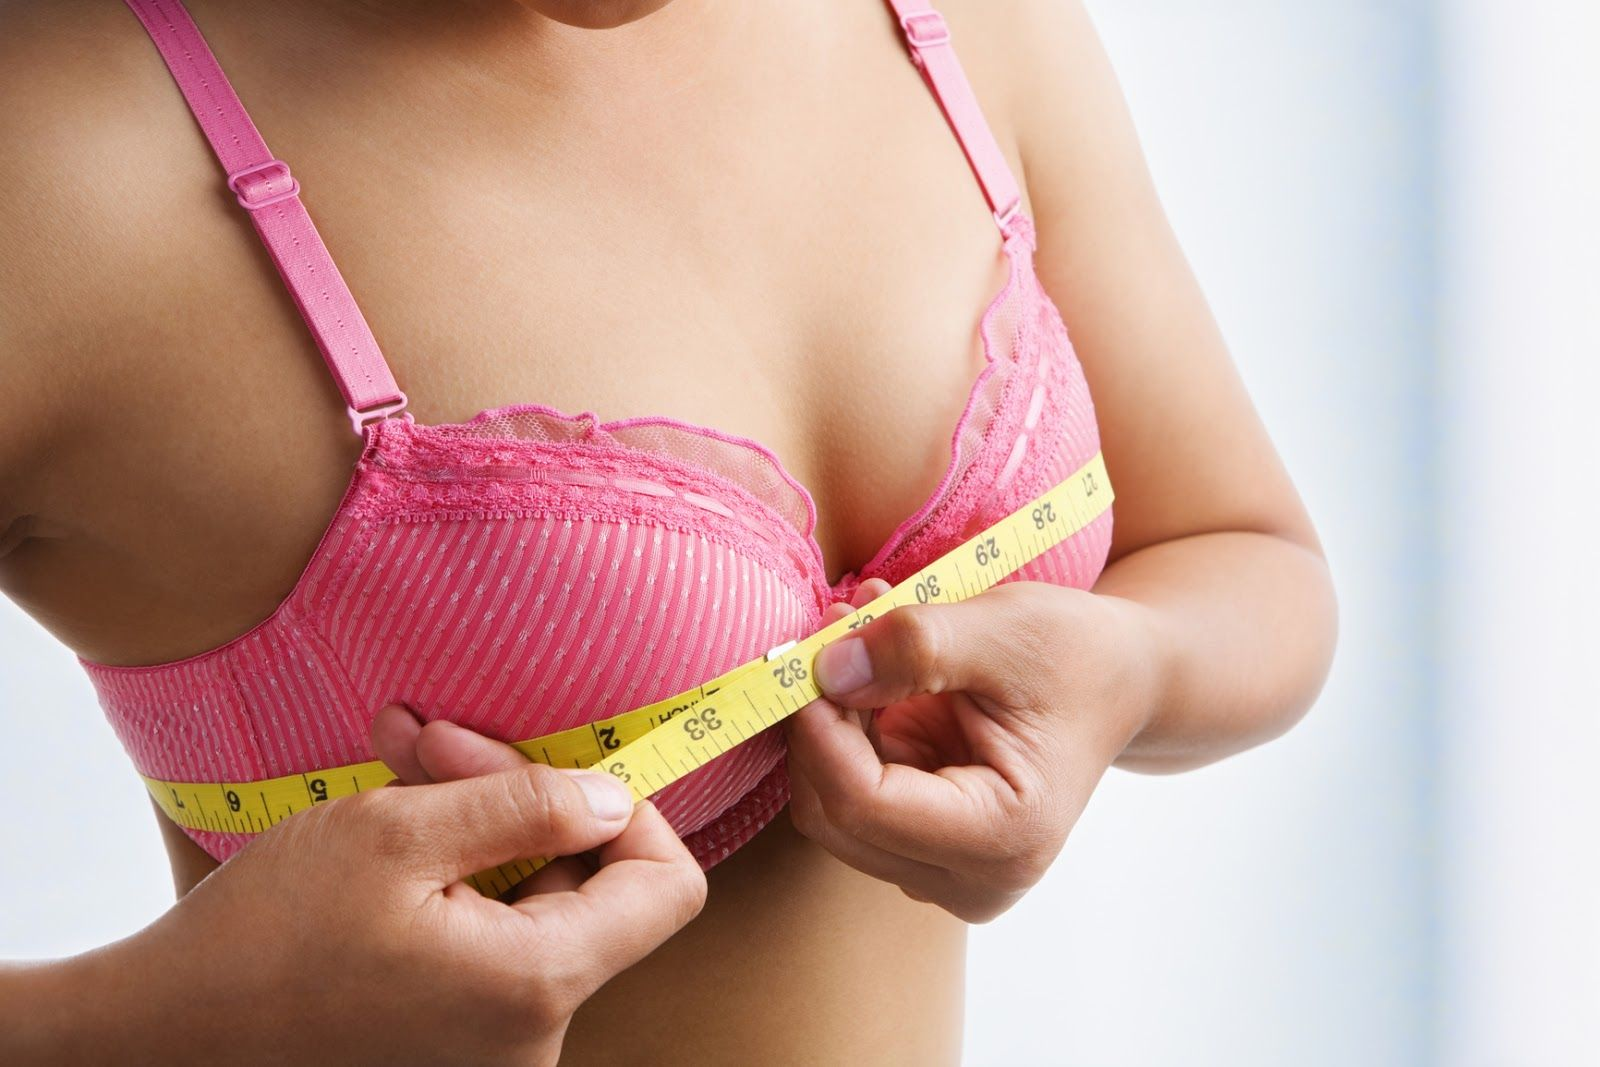 Easy tips to increase your breast size without surgery